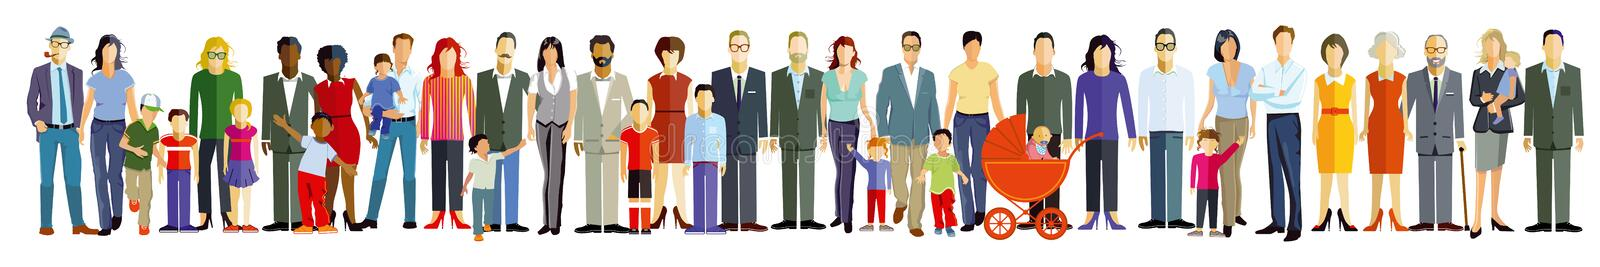 Drawing of people in line royalty free illustration